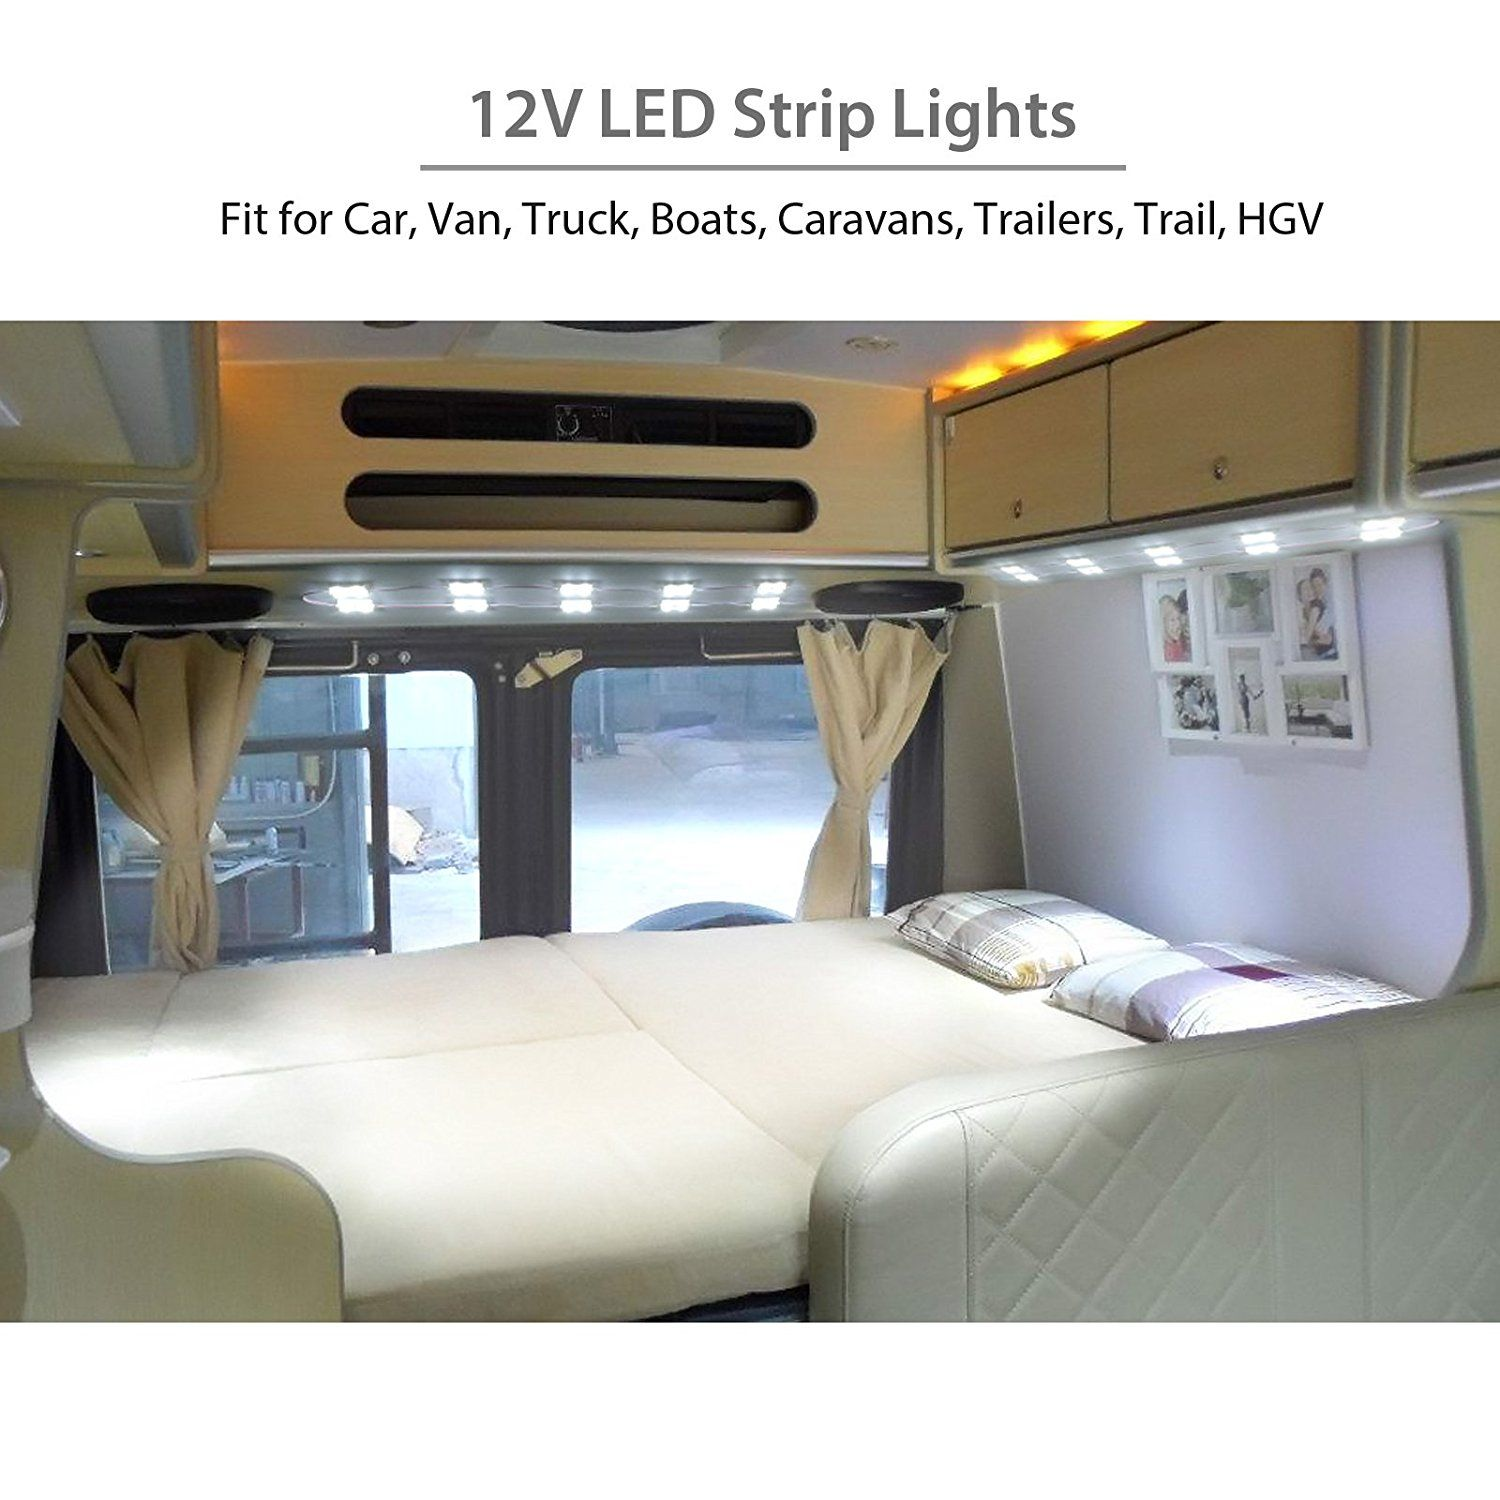 Led Strips For Camper Camper Campervan Car Outdoor Lifestyle Adventure Mit Bildern Ausbau